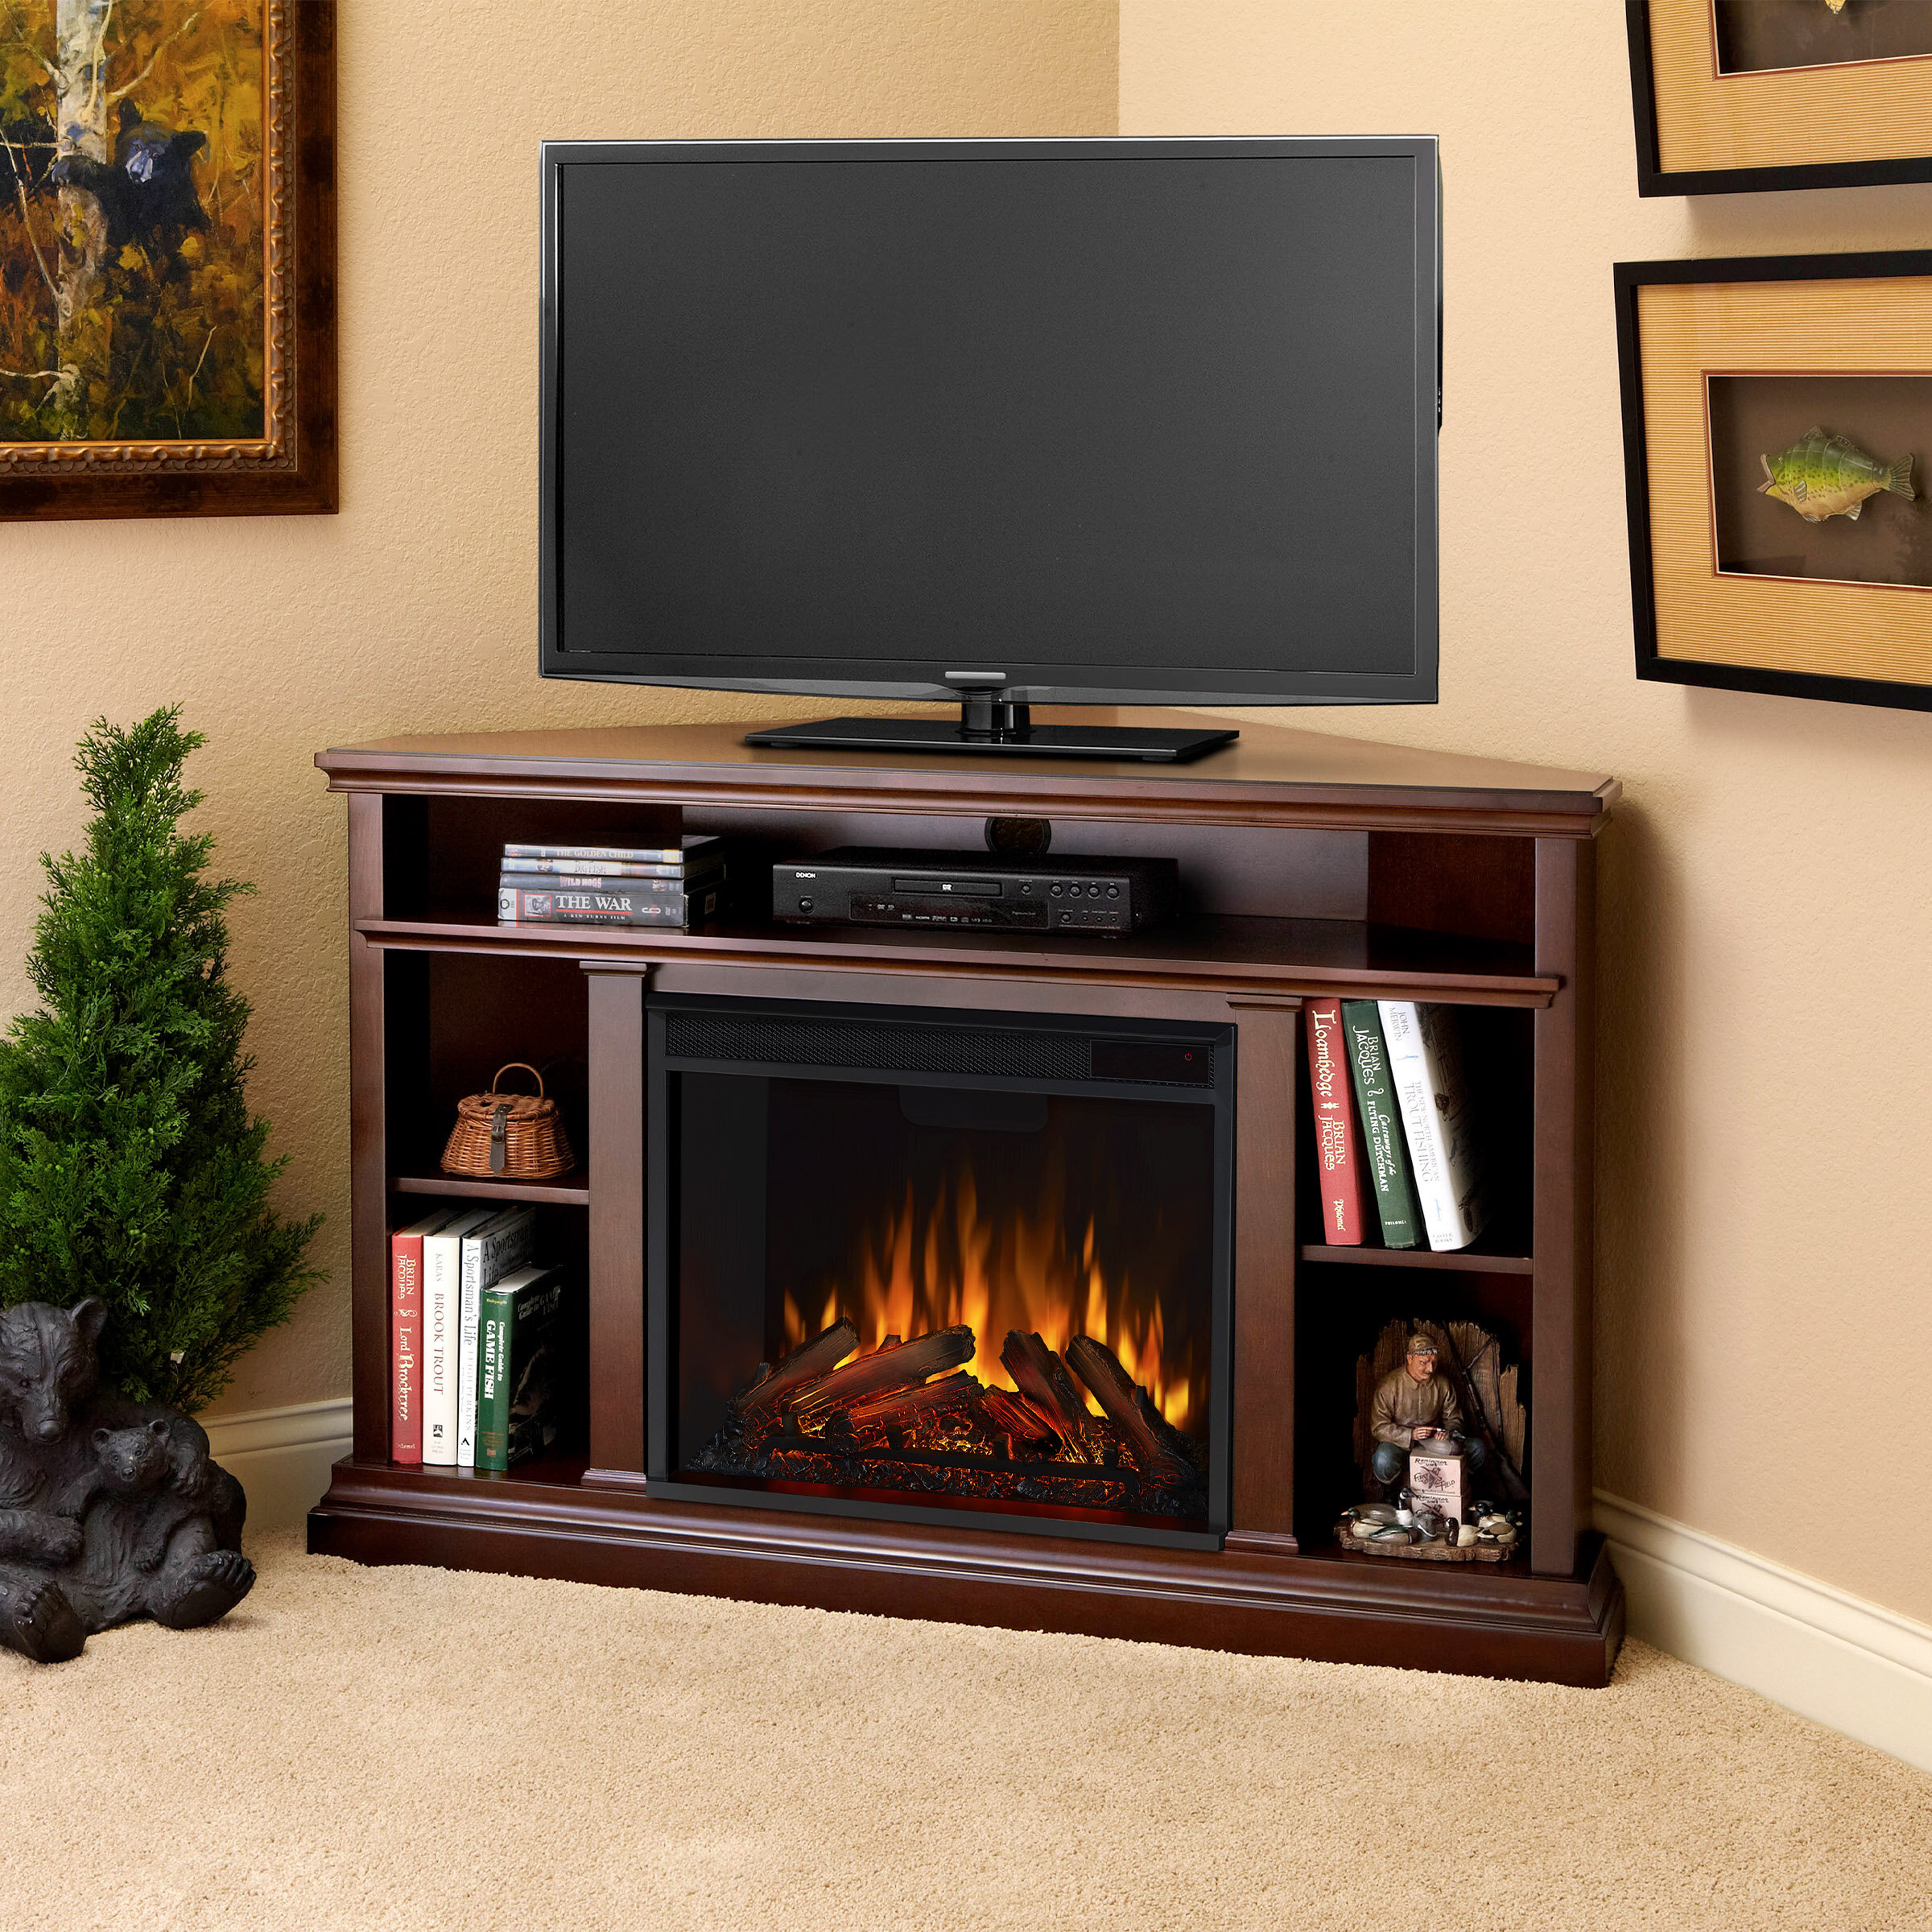 Real Flame Churchill Corner Unit Tv Stand For Tvs Up To 50 With Fireplace Included Reviews